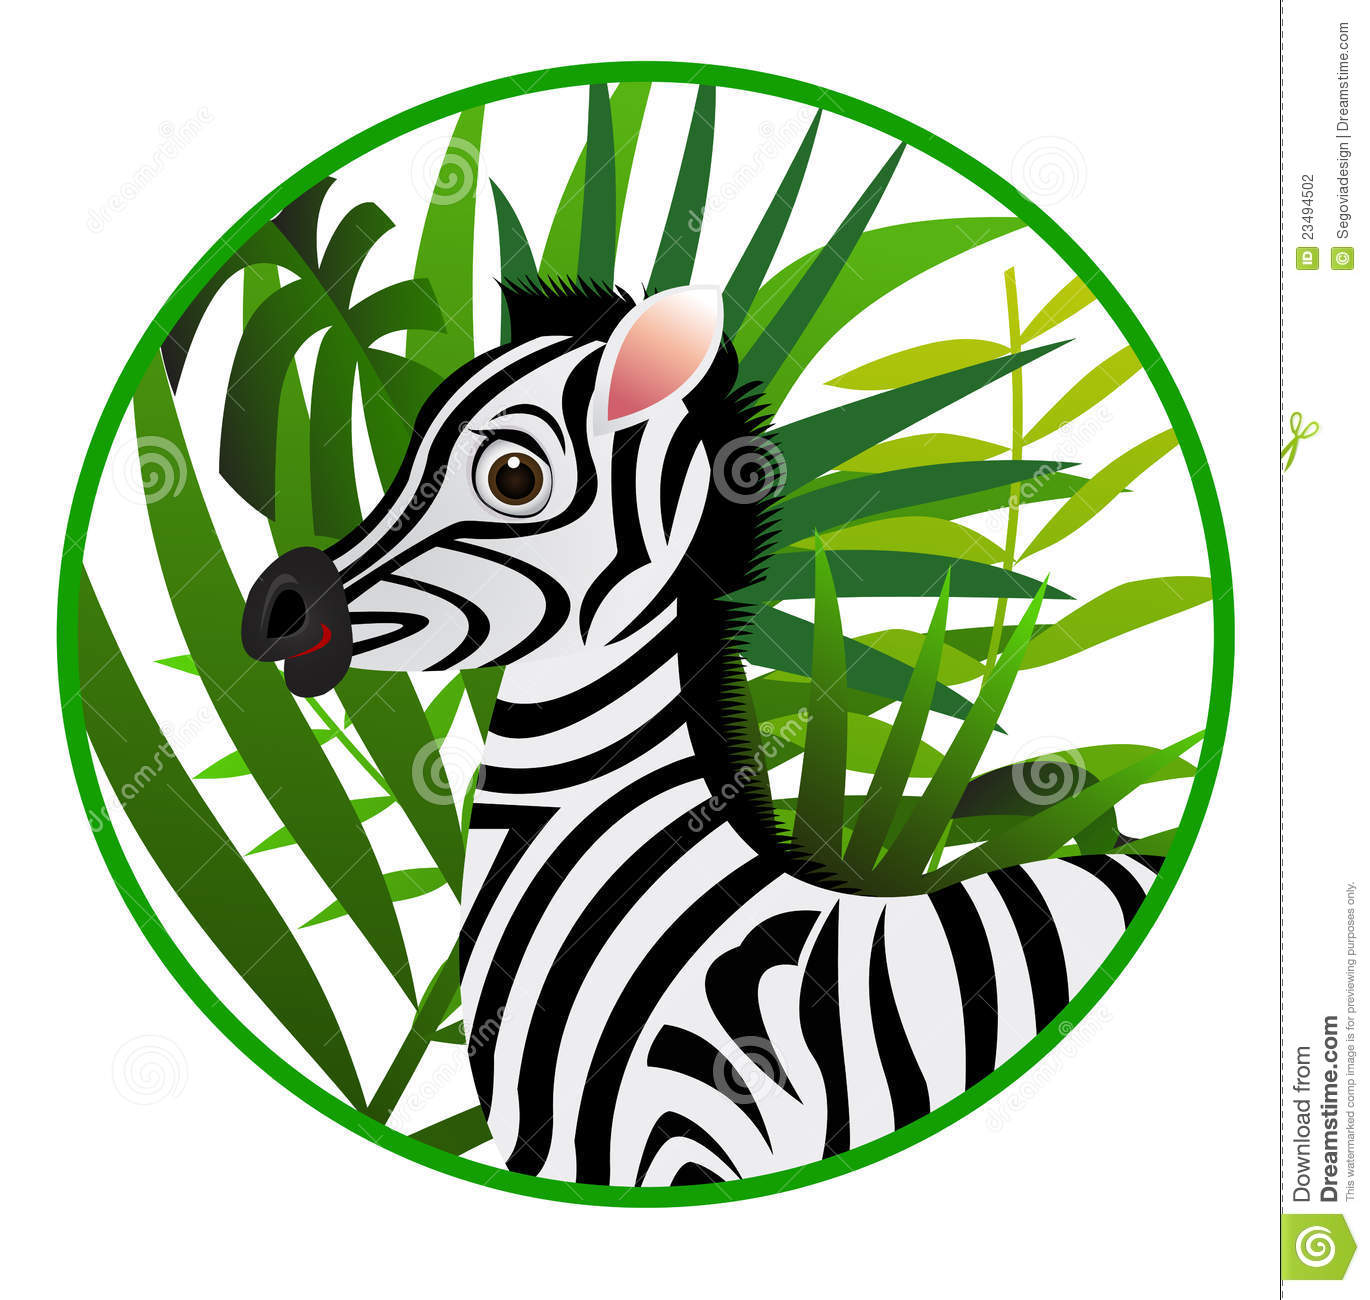 Funny zebra cartoon stock vector. Image of funny, isolated ...